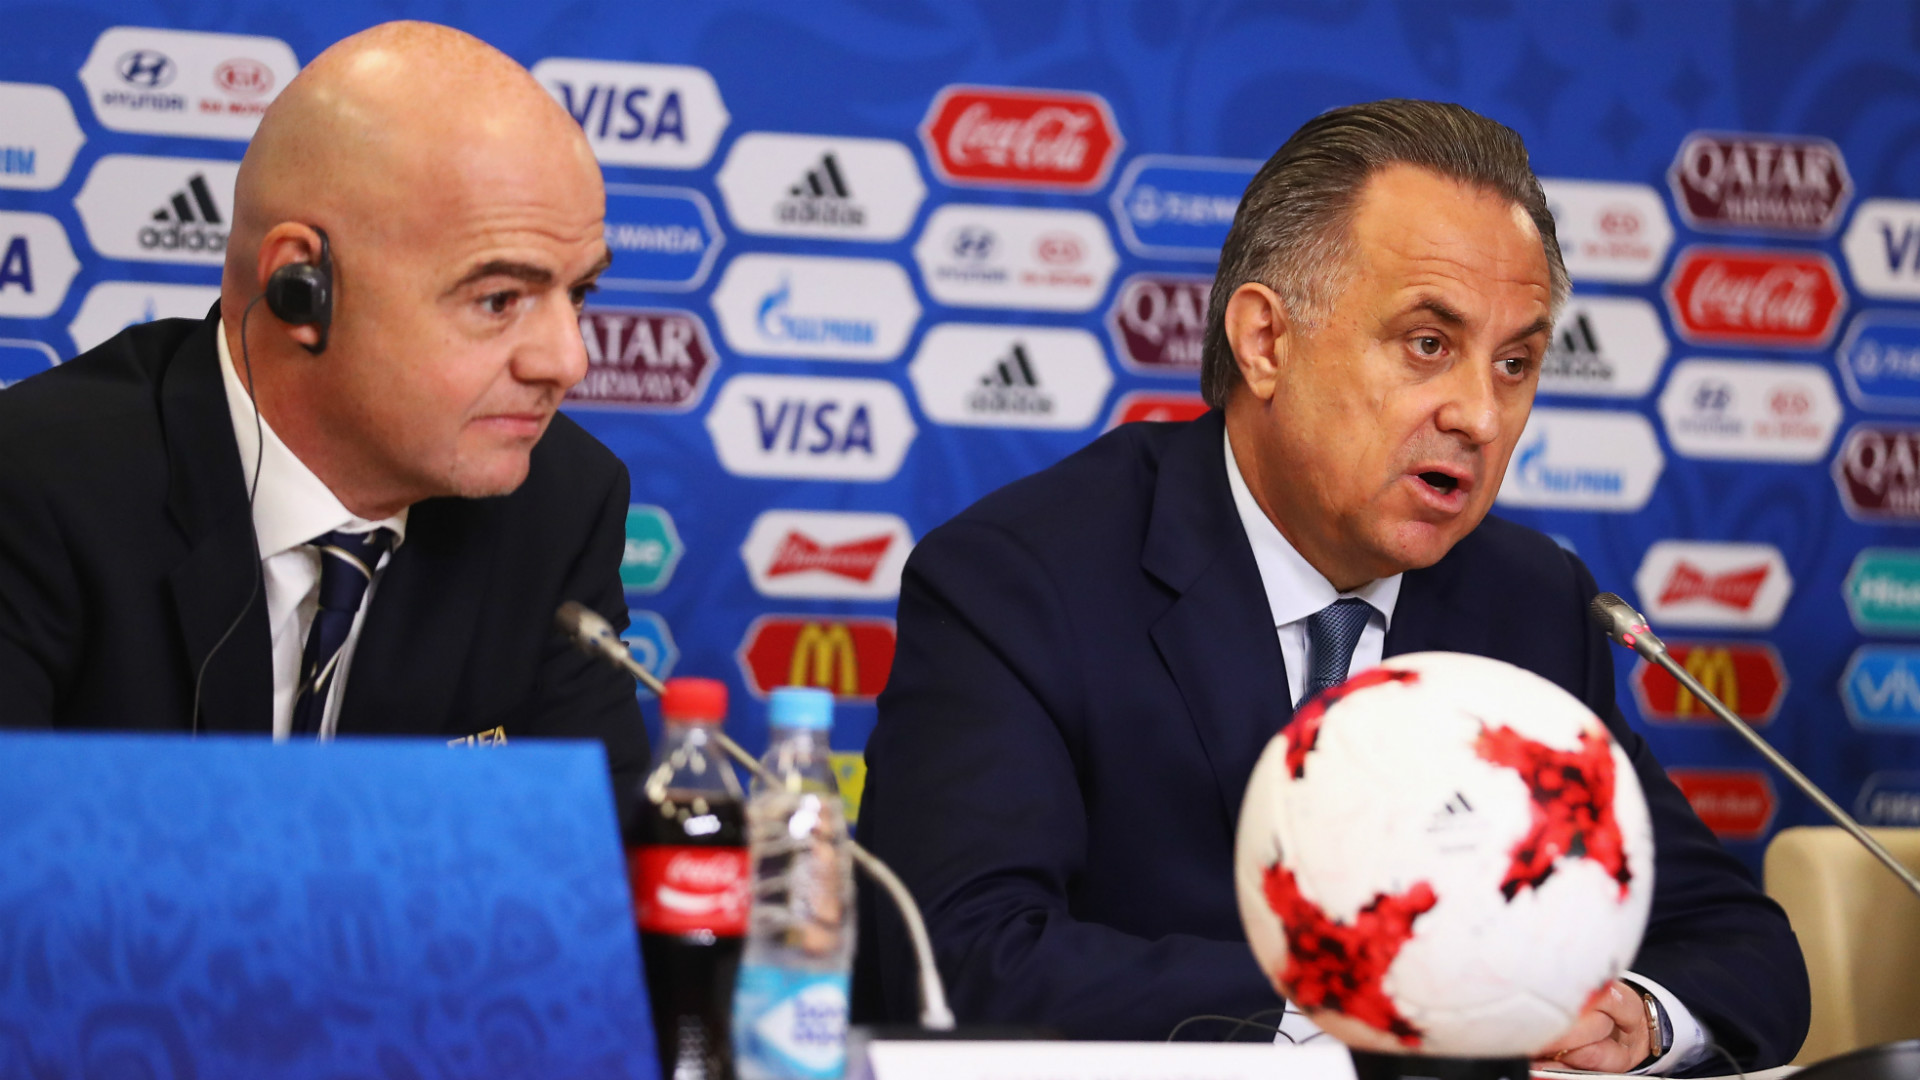 Vitaly Mutko again struck the public with his English 05/29/2015 66